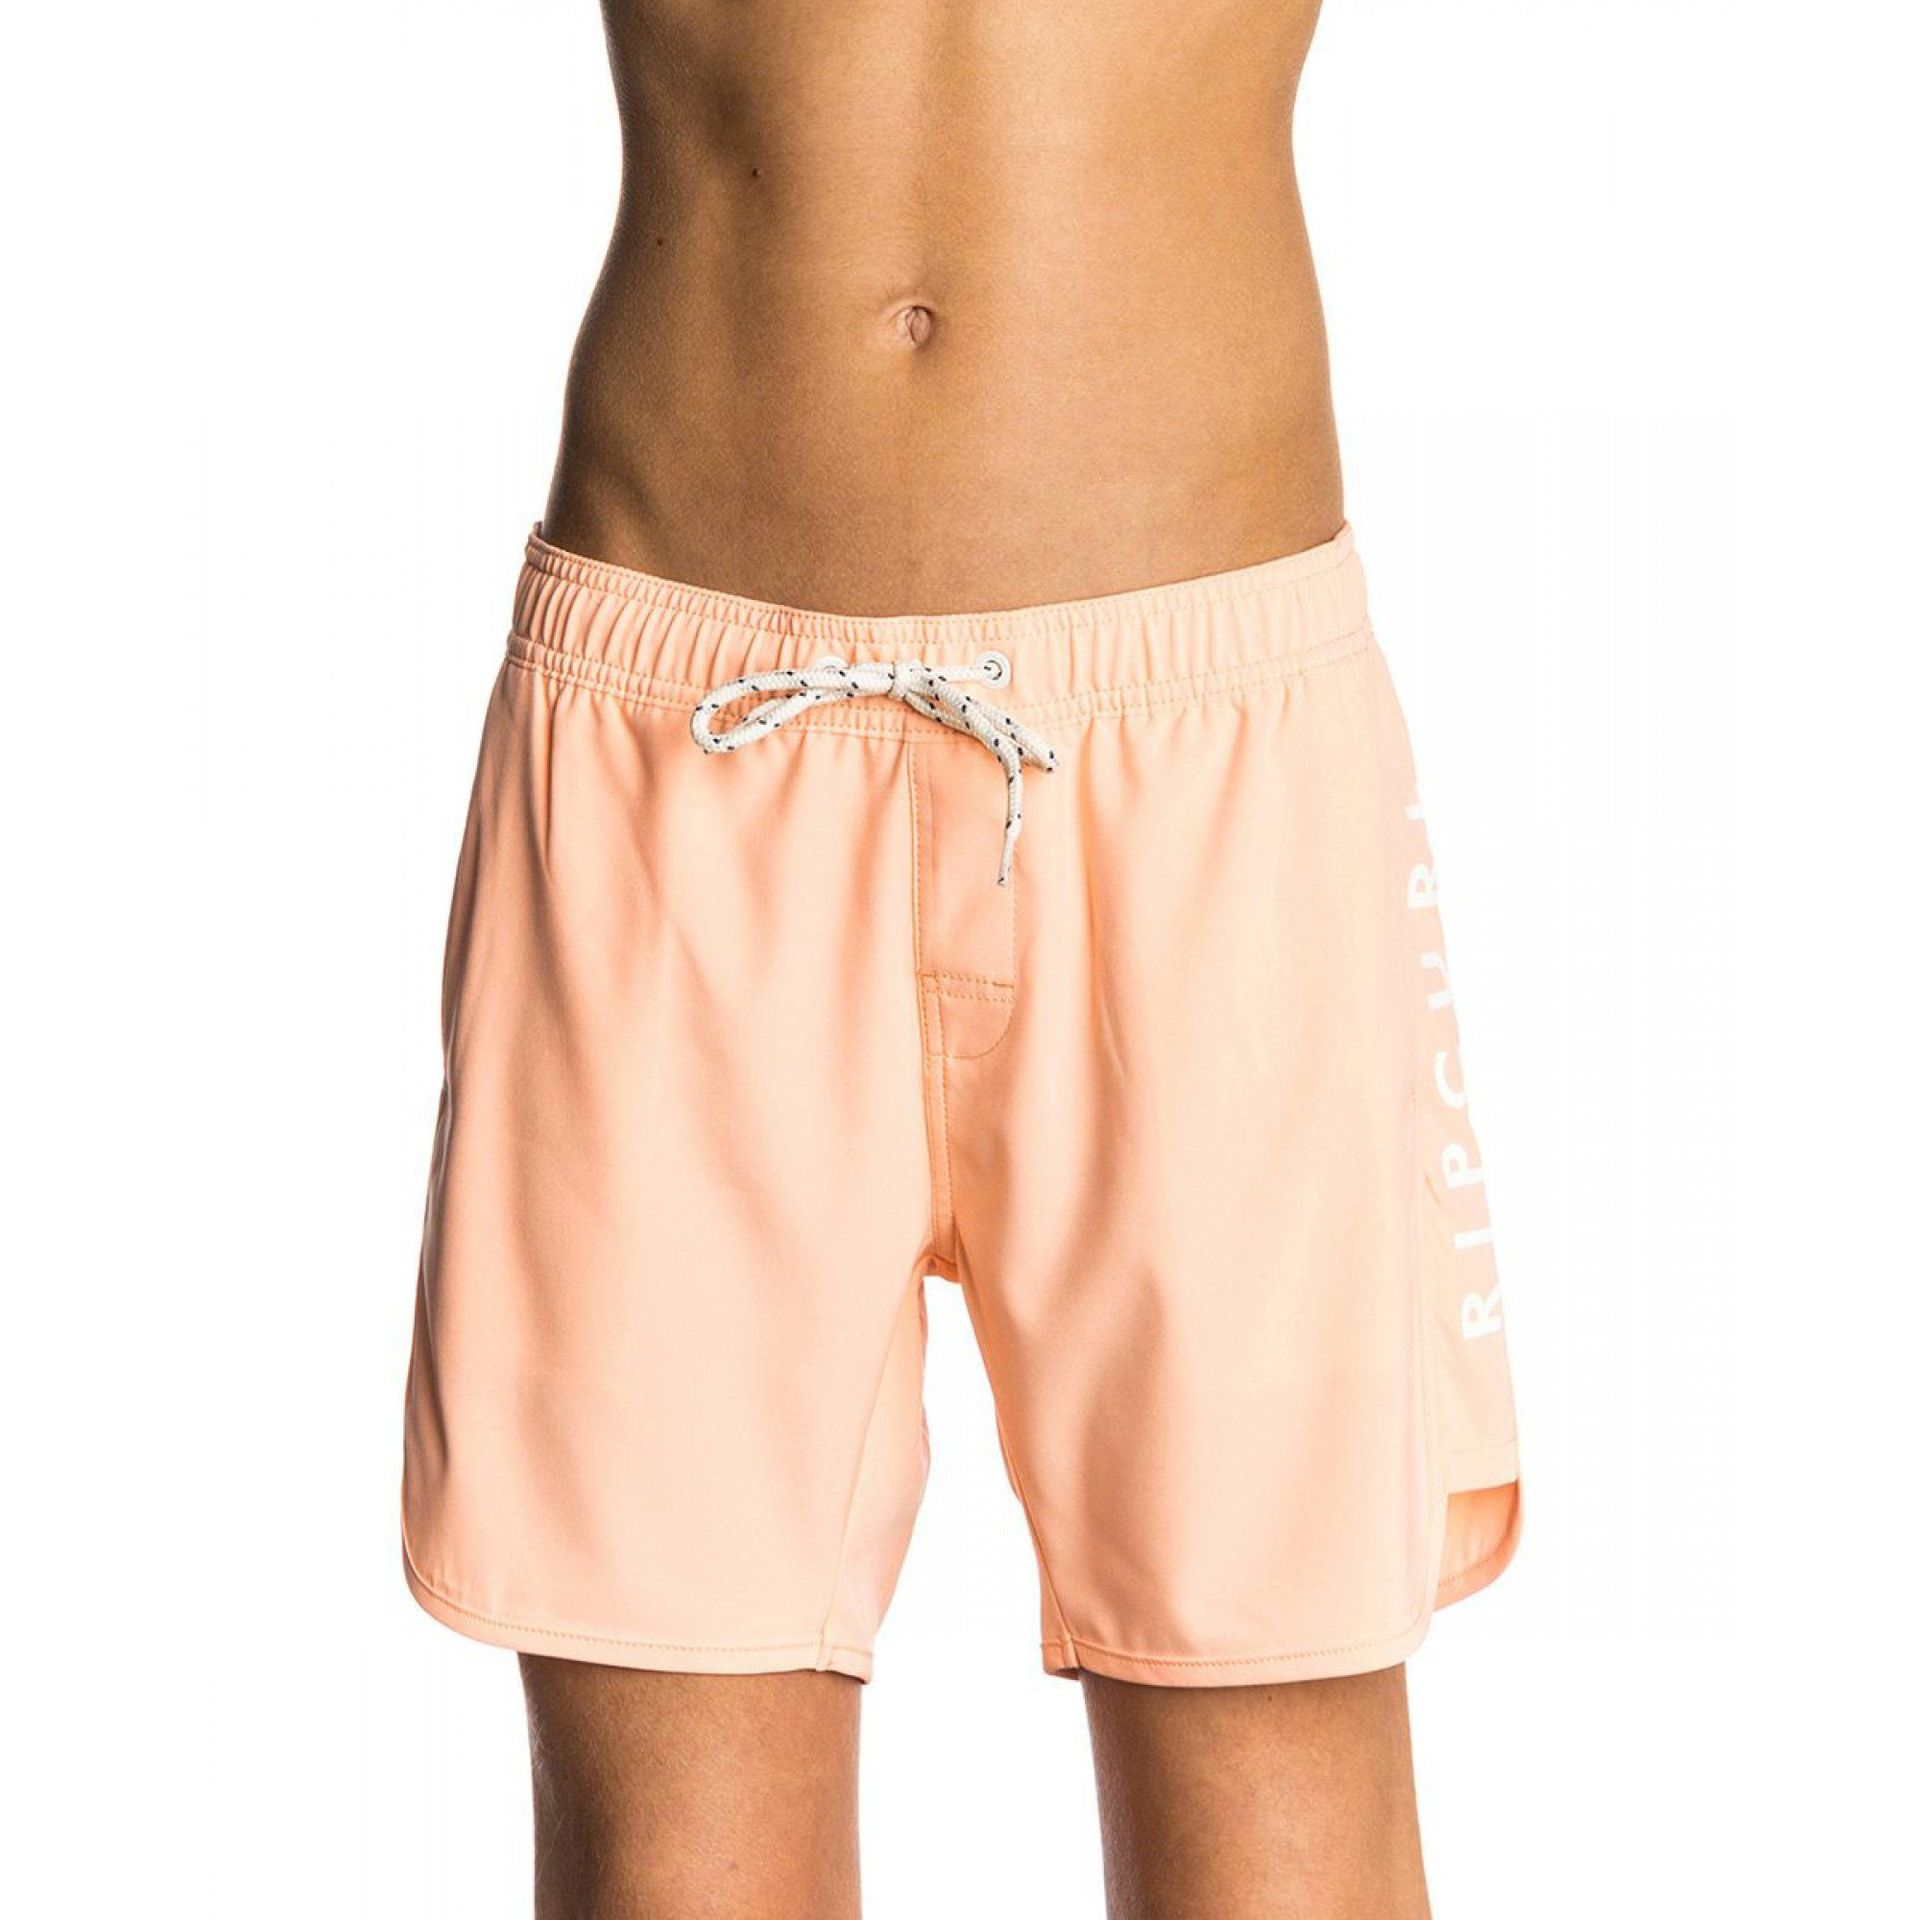 BOARDSHORTY RIP CURL MANHATTAN 7 0165 PEACH 1